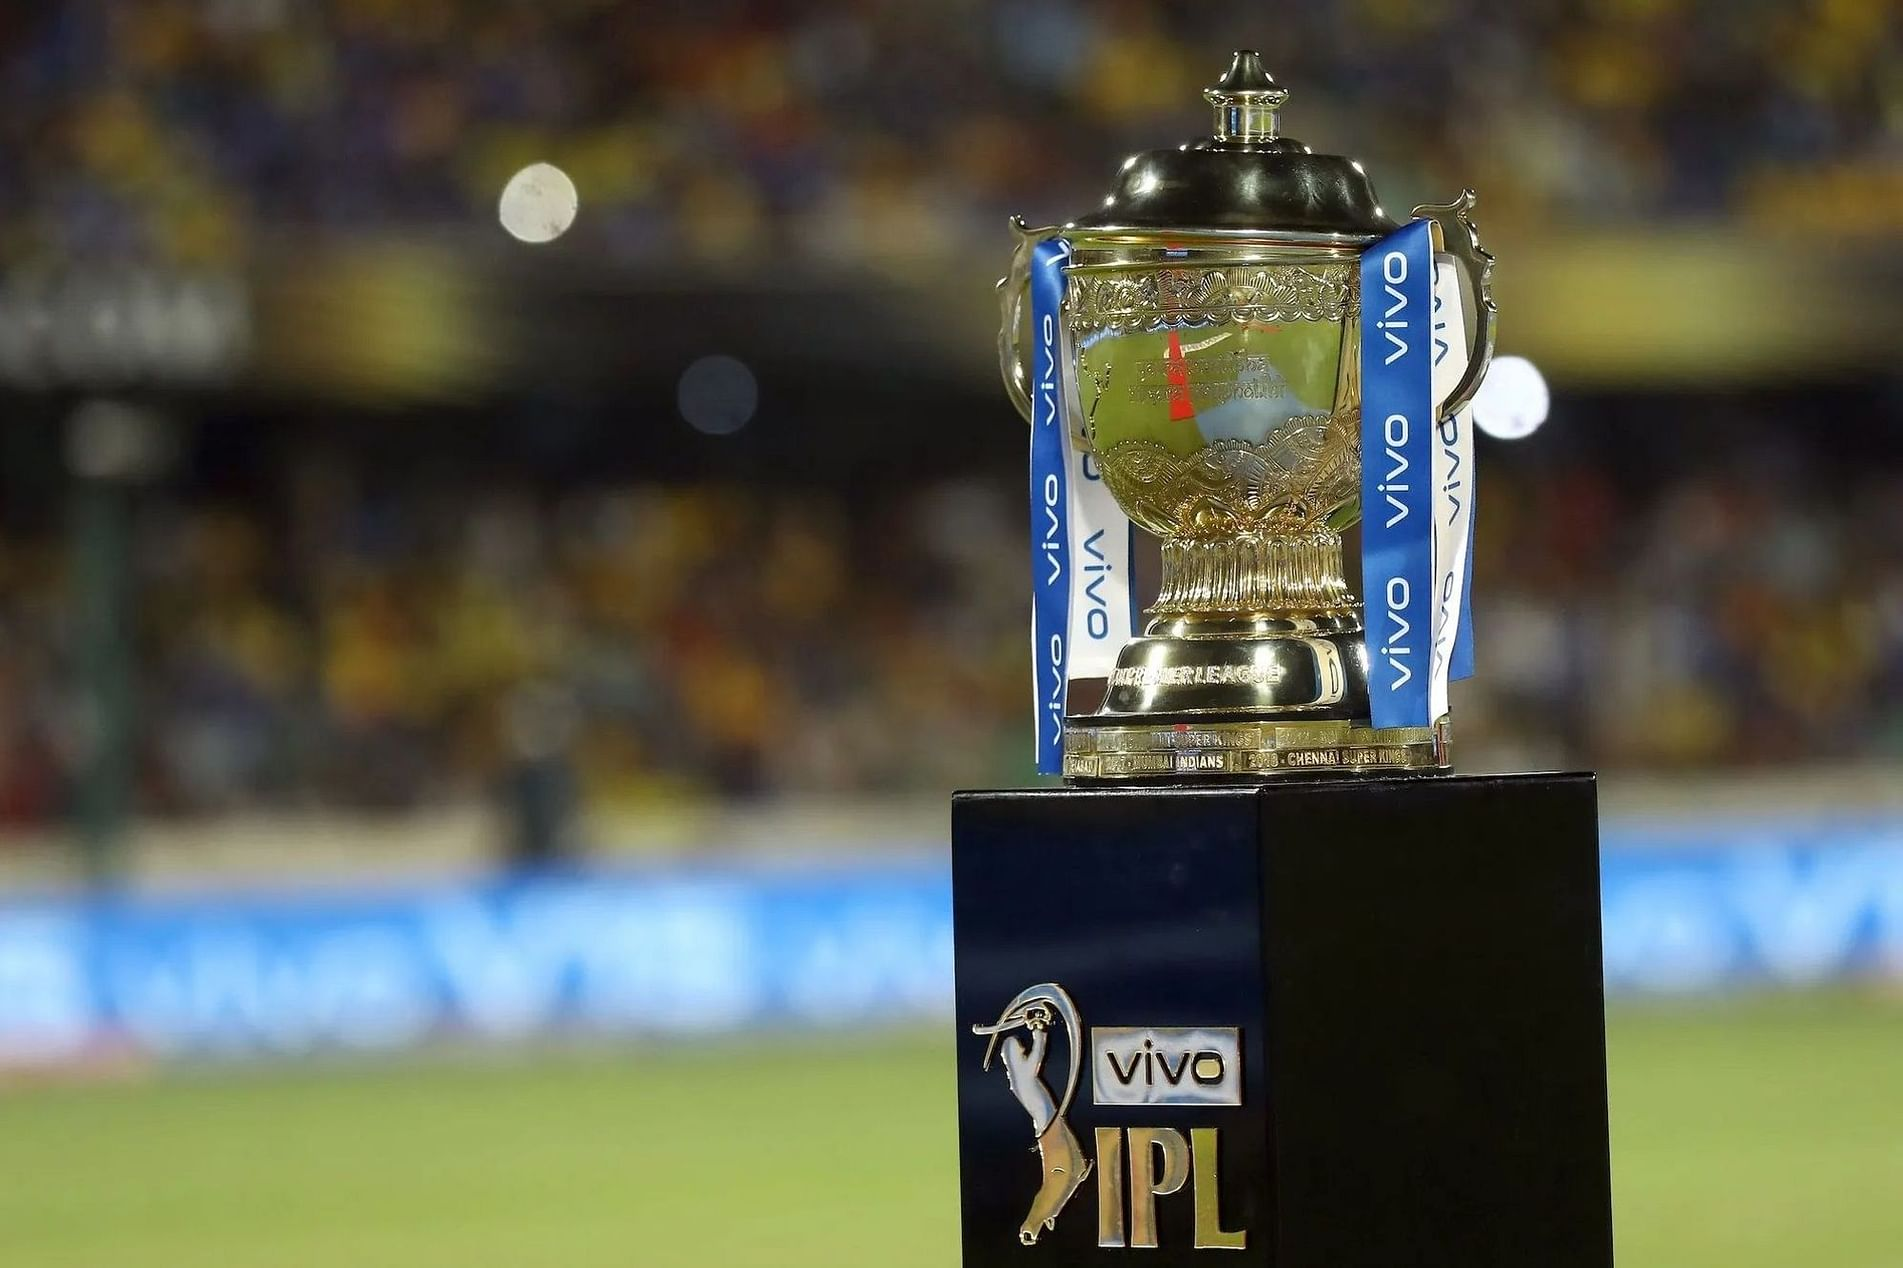 October 17- New IPL team likely through closed bids